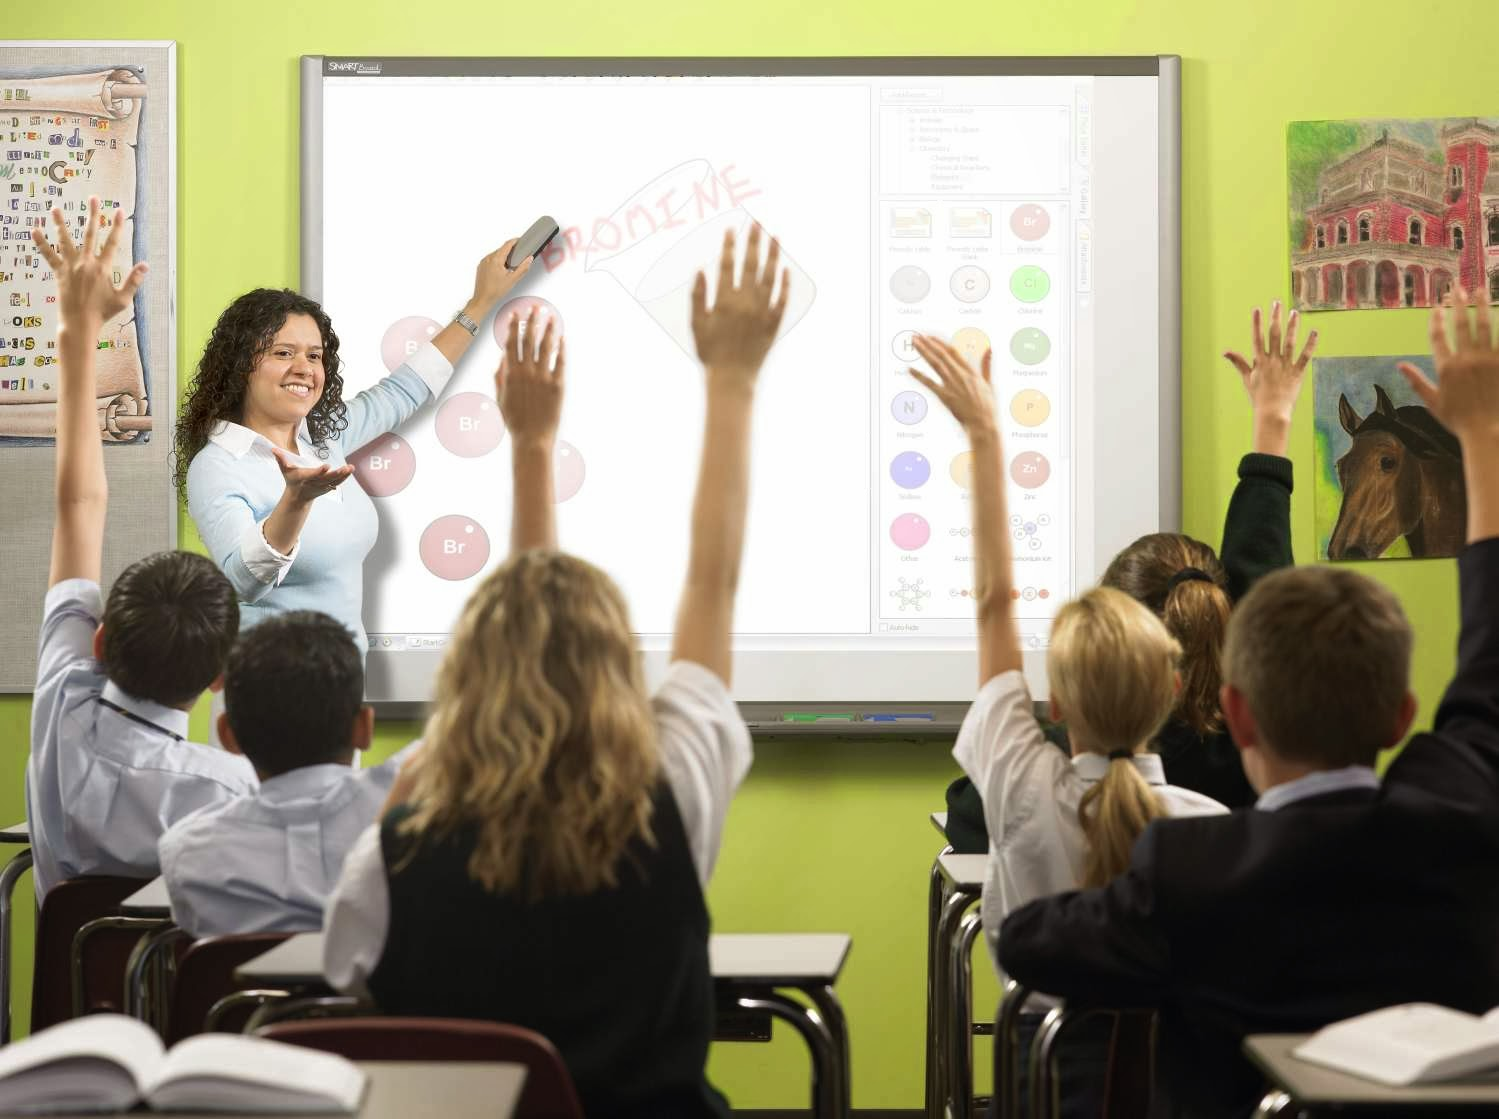 Teacher teaching using a smartboard